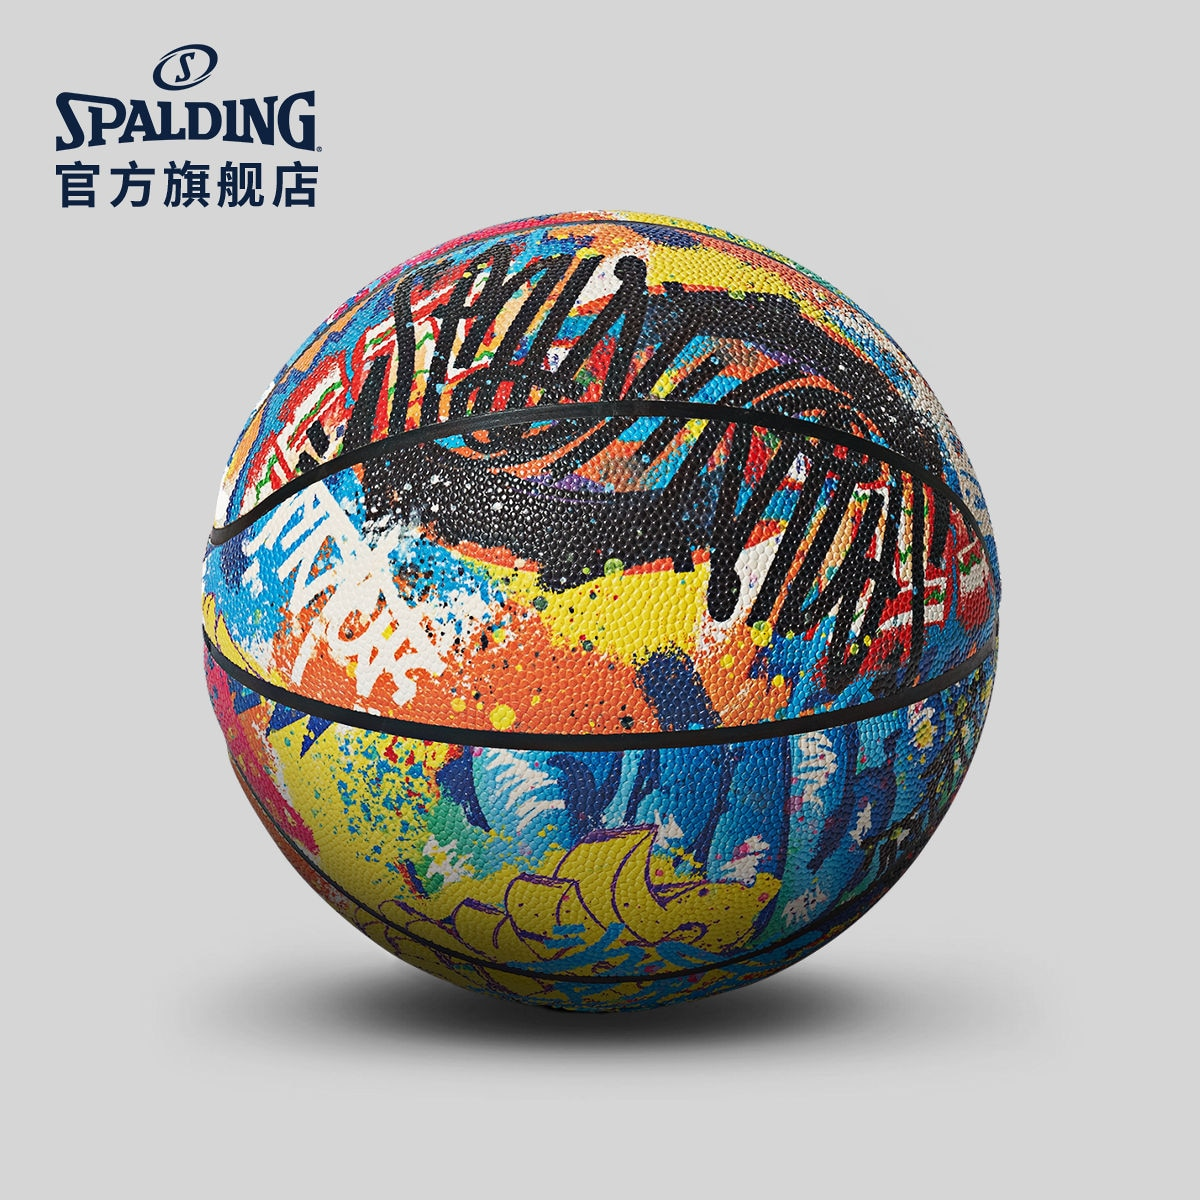 Spalding Official Flagship Store Graffiti No. 7 PU Basketball Indoor and Outdoor Colorful Trend